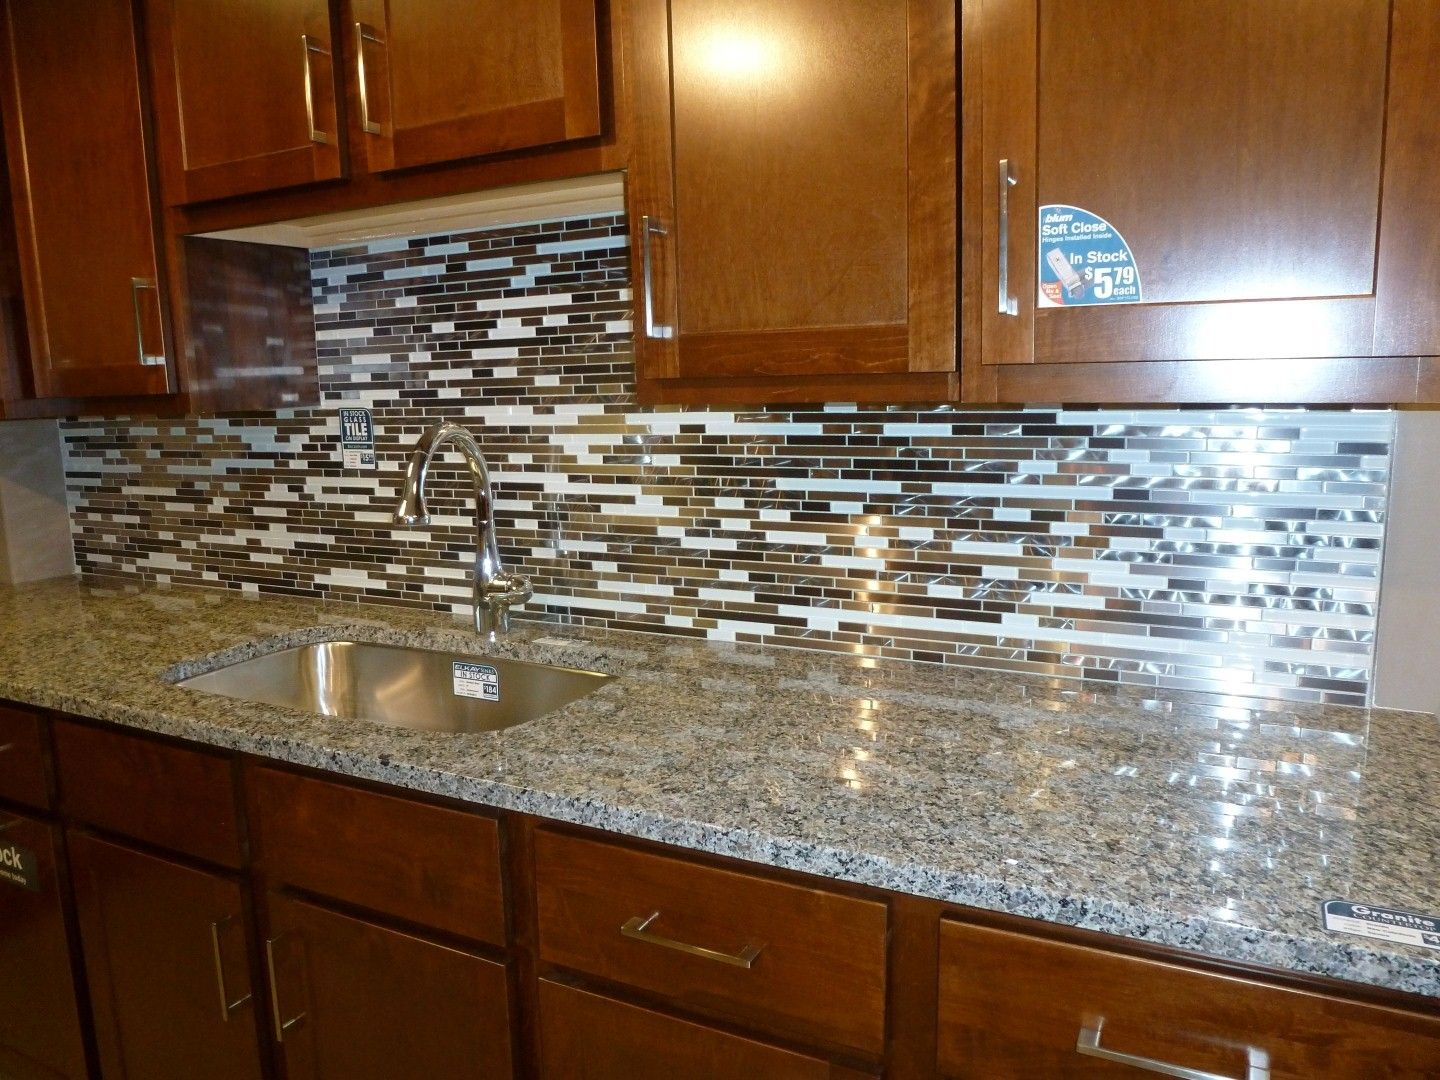 Glass tile kitchen backsplashes pictures metal and white glass random strips backsplash tile - Kitchen backsplash tile ...